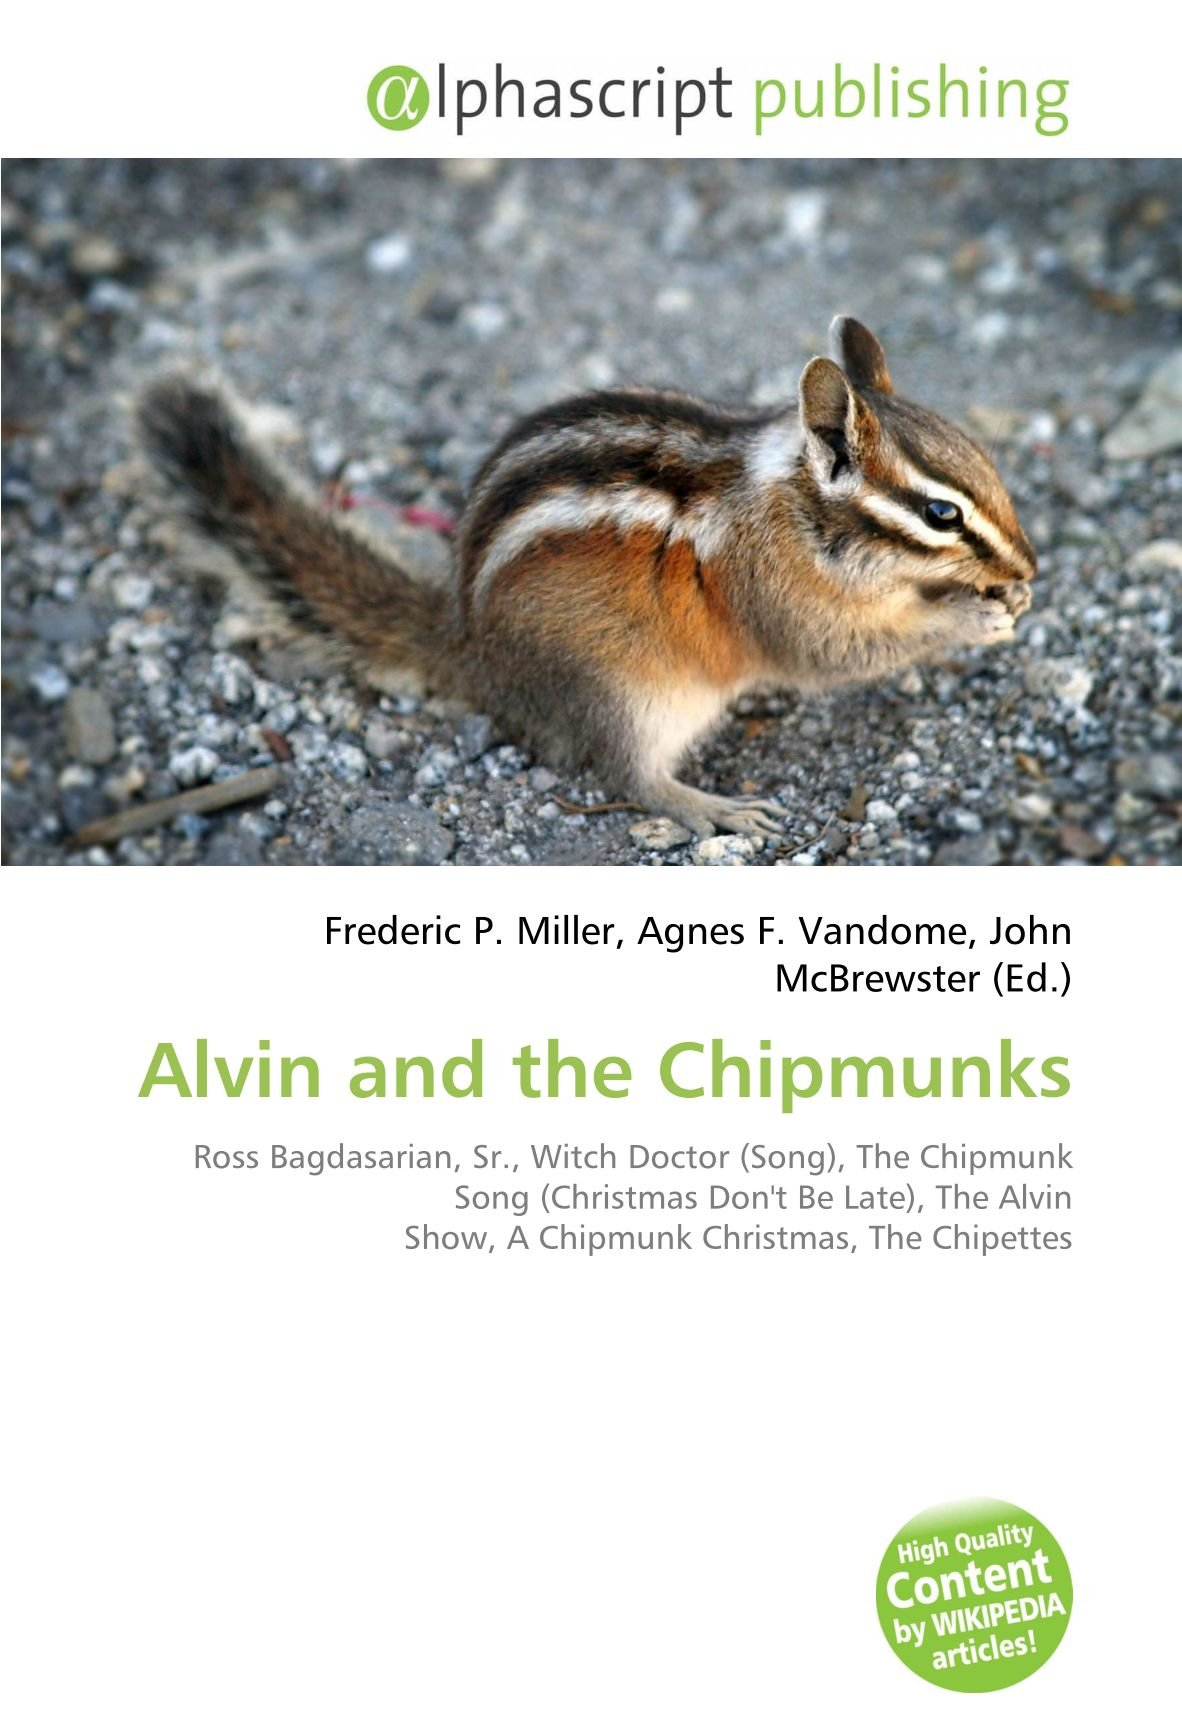 Alvin and the Chipmunks: Ross Bagdasarian, Sr, Witch Doctor Song ...